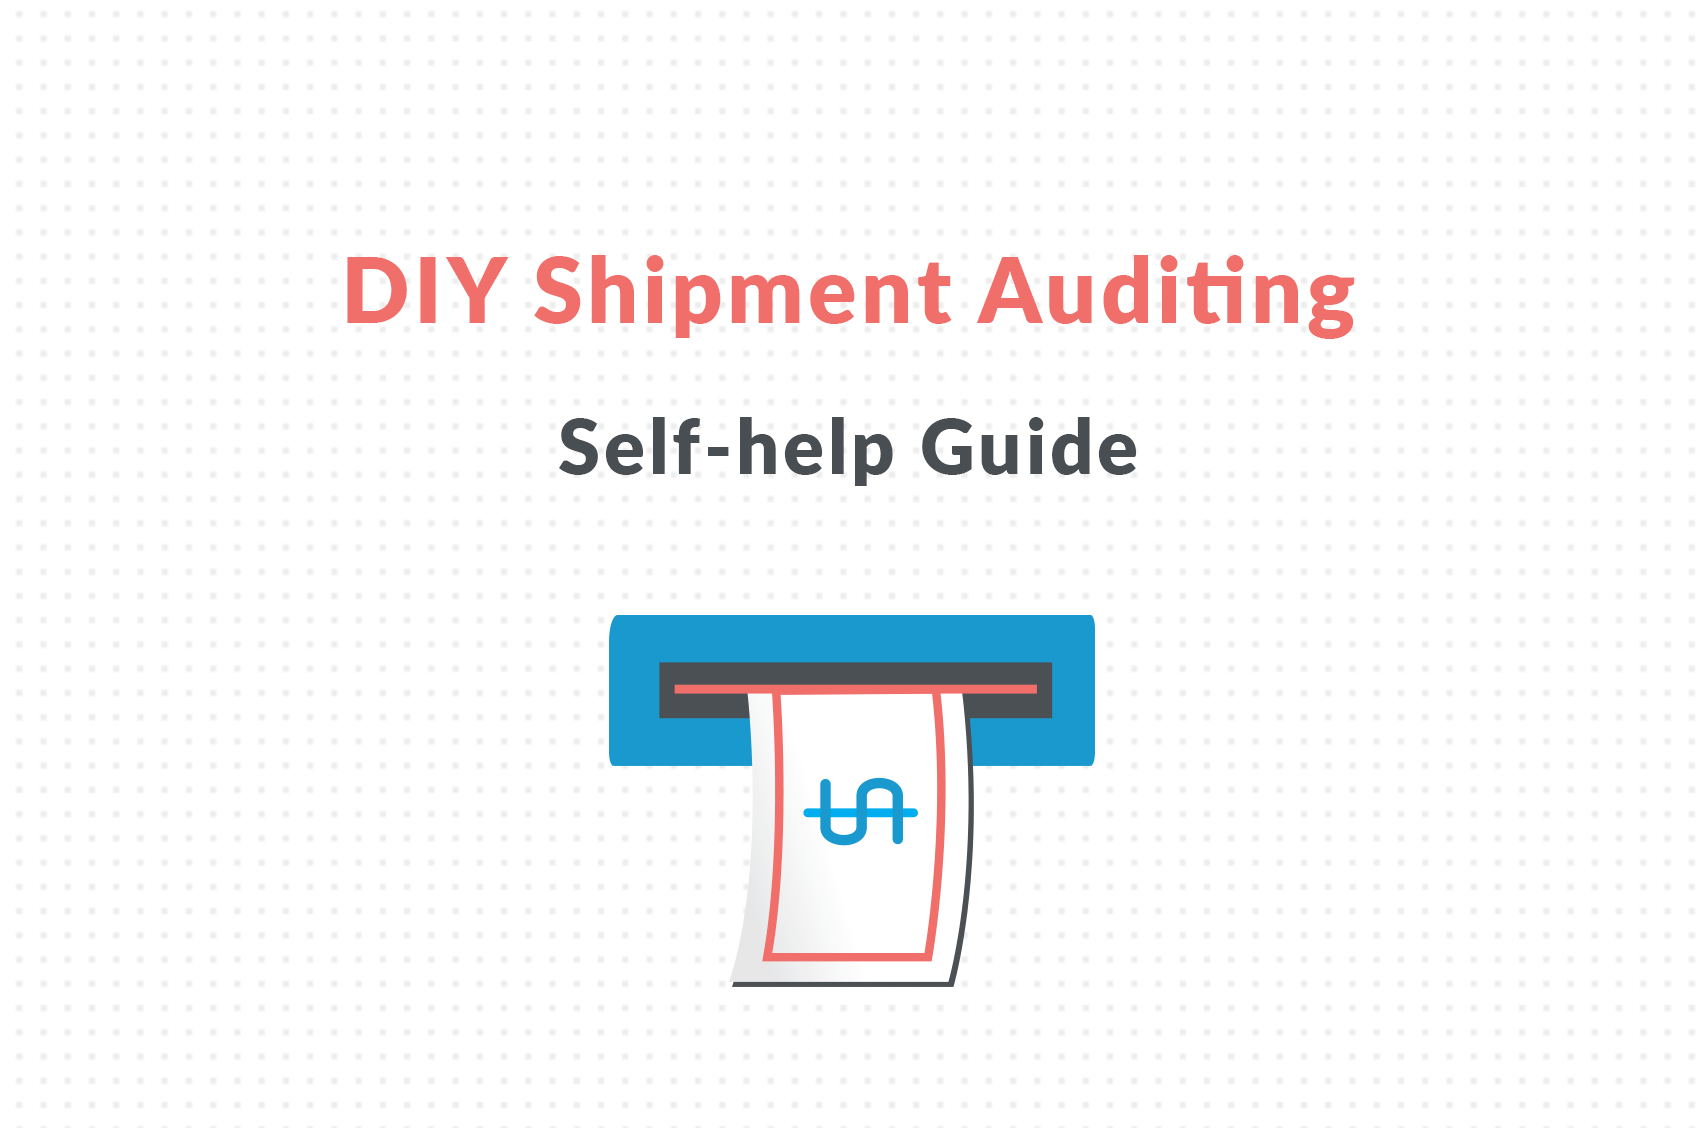 diy shipment auditing